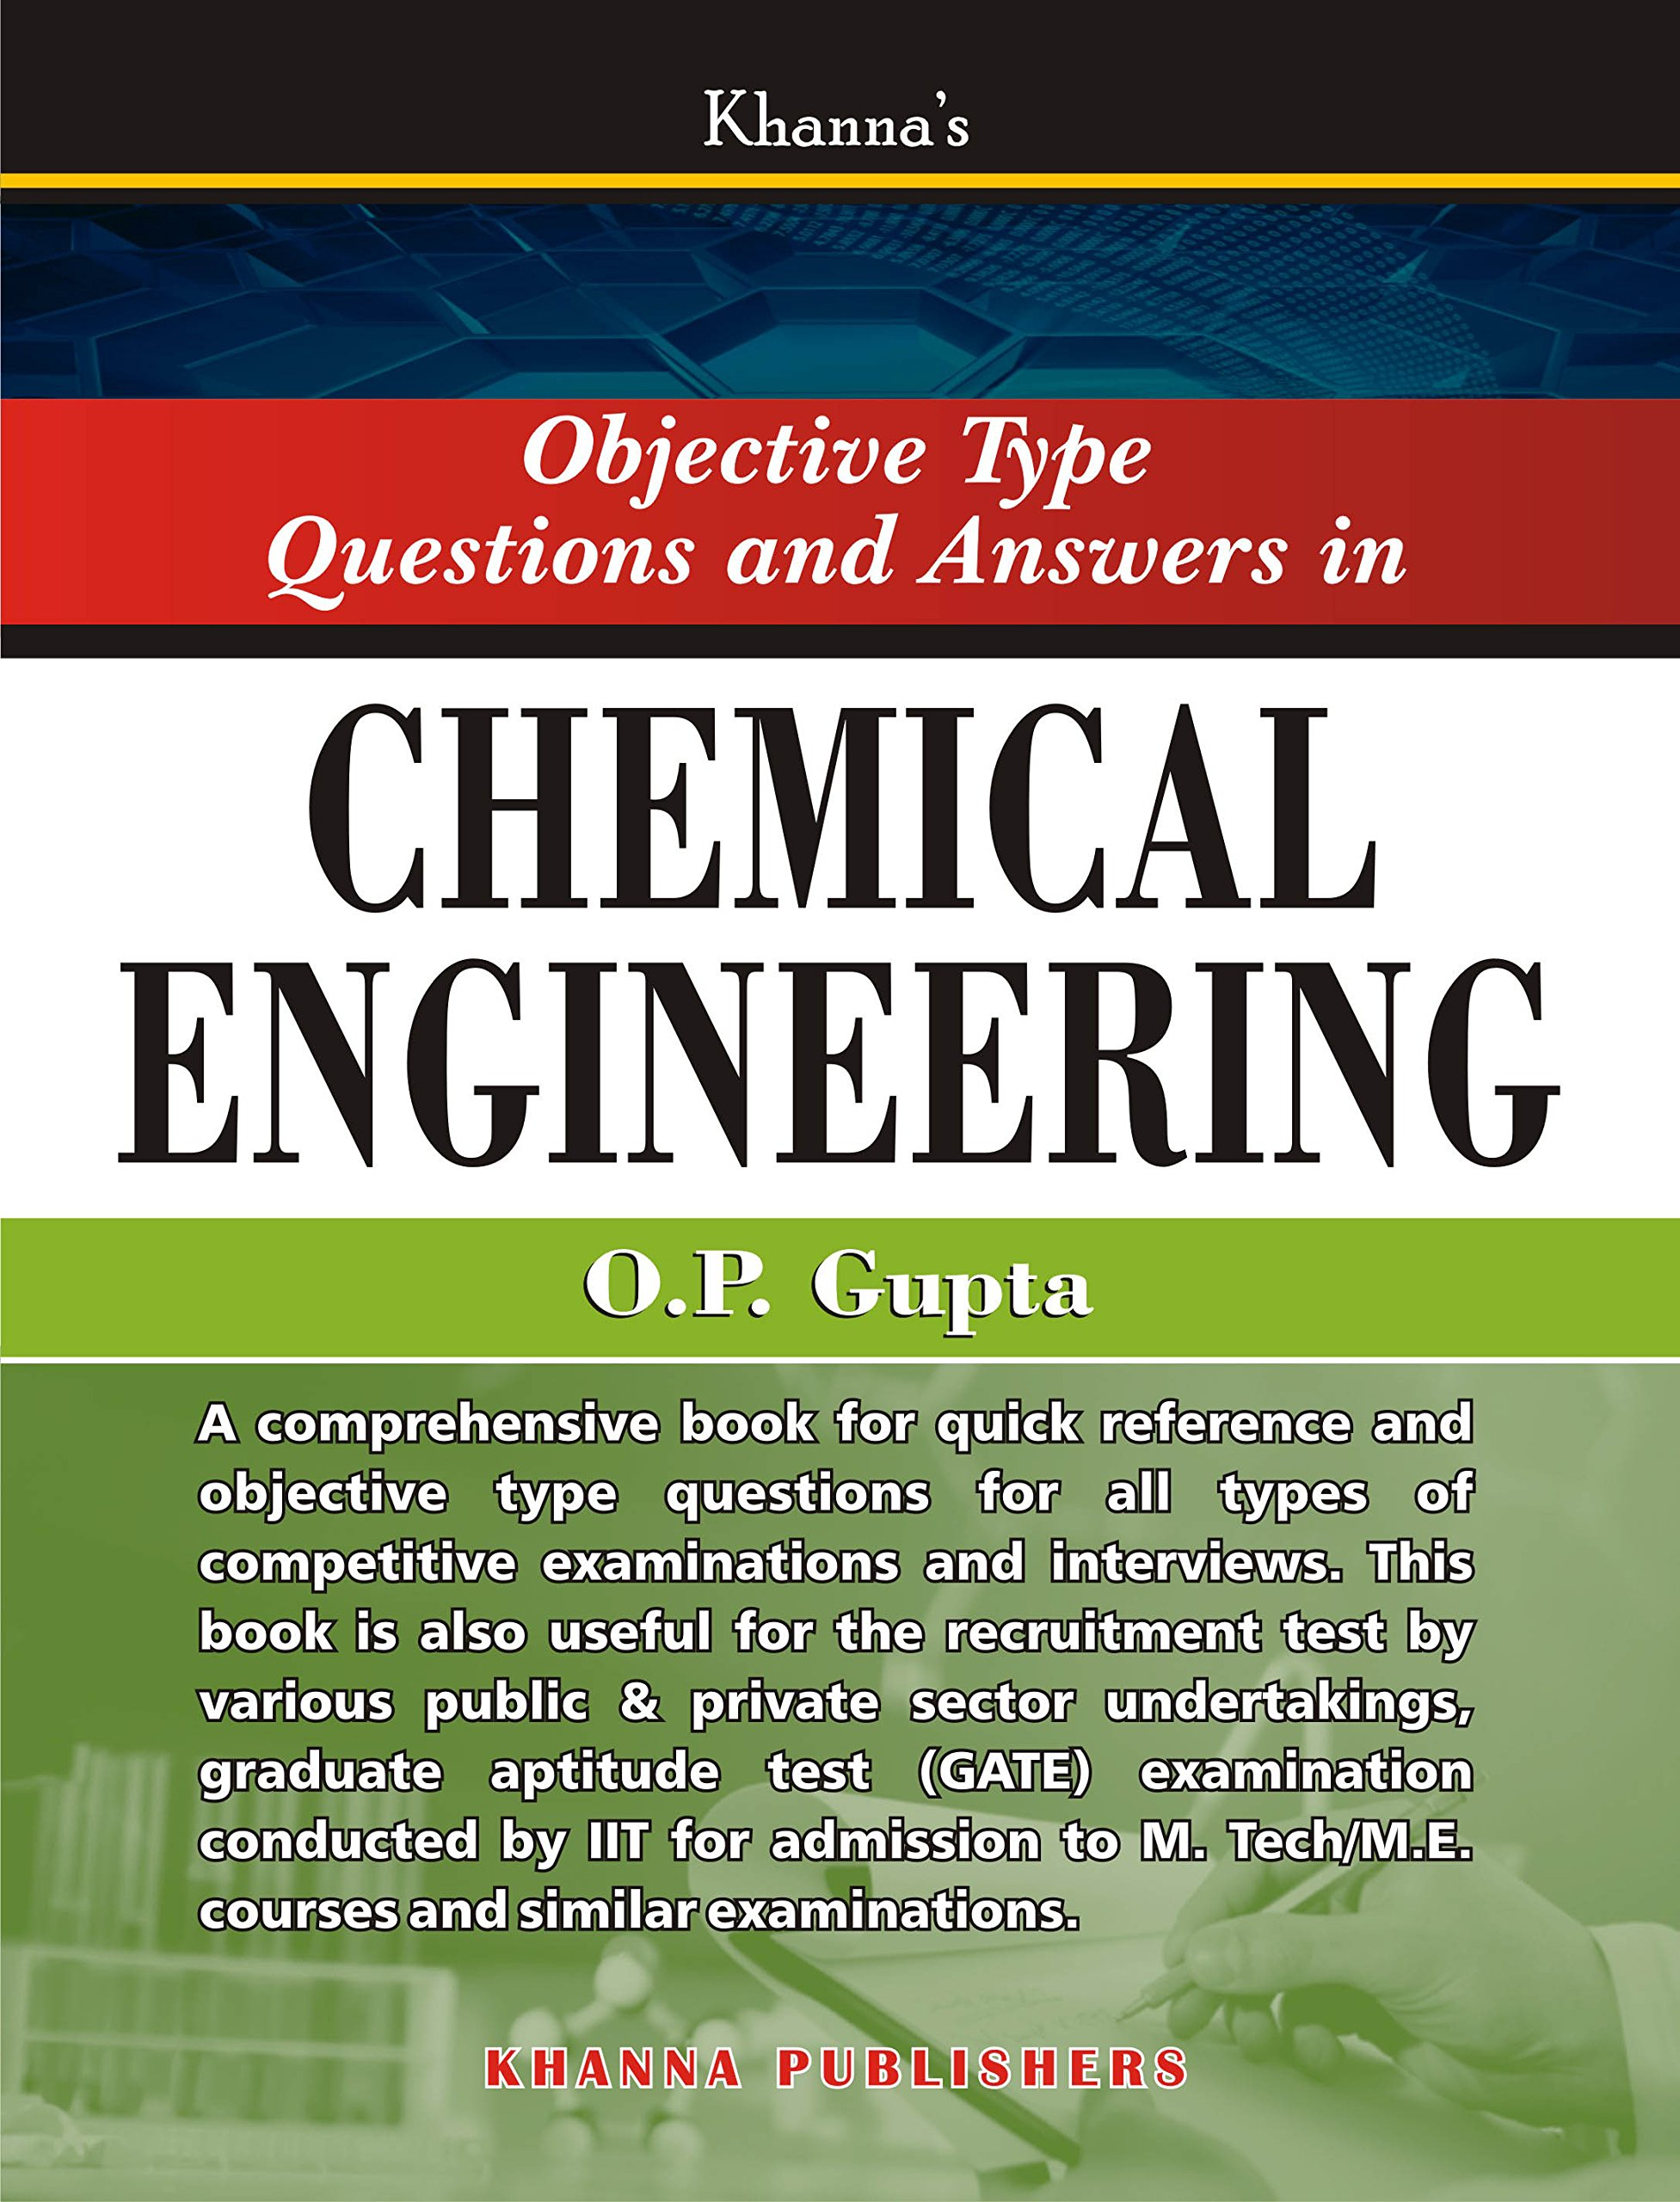 buy objective type questions and answers in chemical engineering buy objective type questions and answers in chemical engineering book online at low prices in objective type questions and answers in chemical